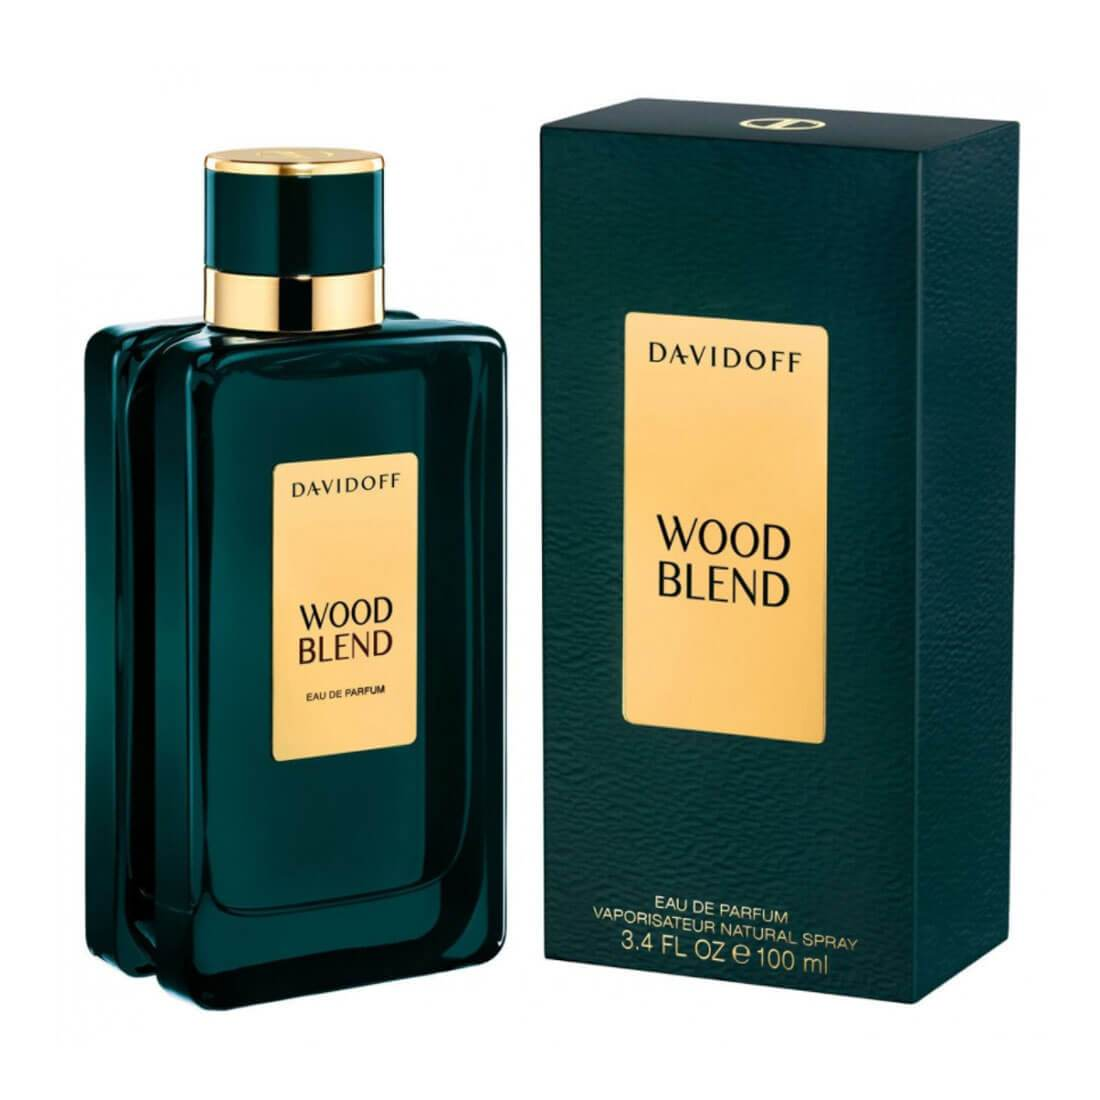 Davidoff Wood Blend Perfume - 100ml